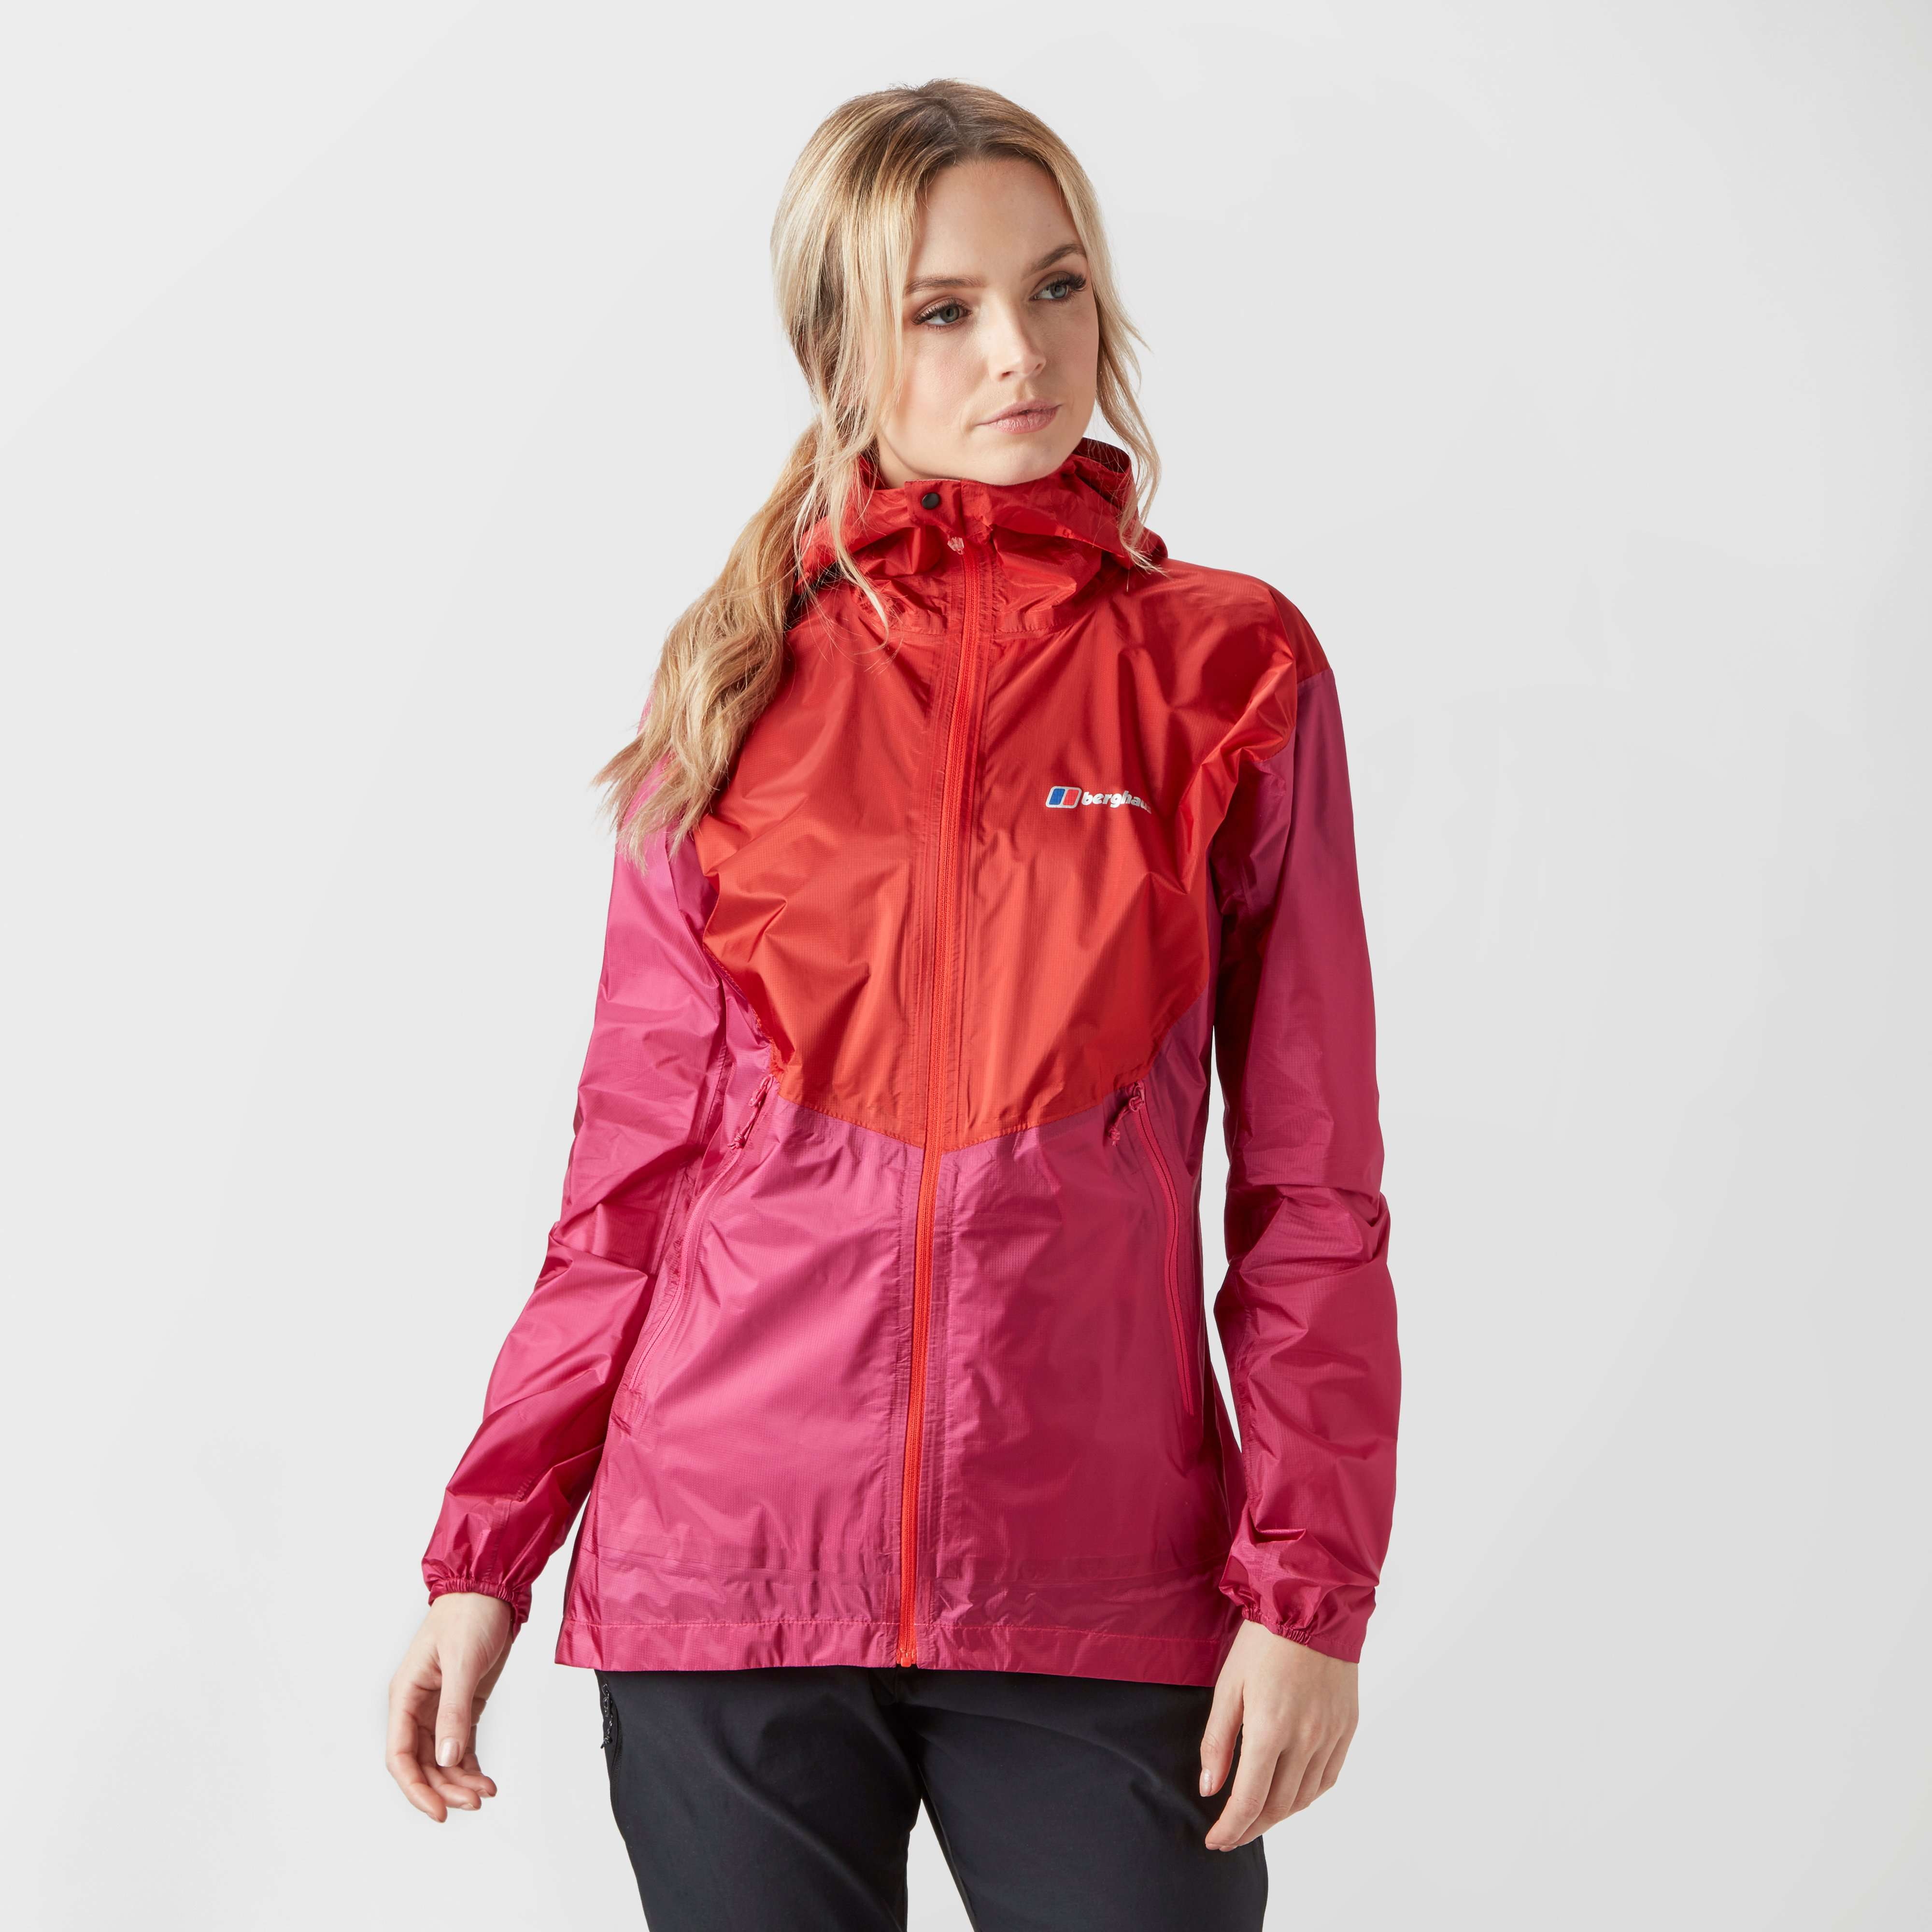 BERGHAUS Women's Fast Hike Waterproof Jacket